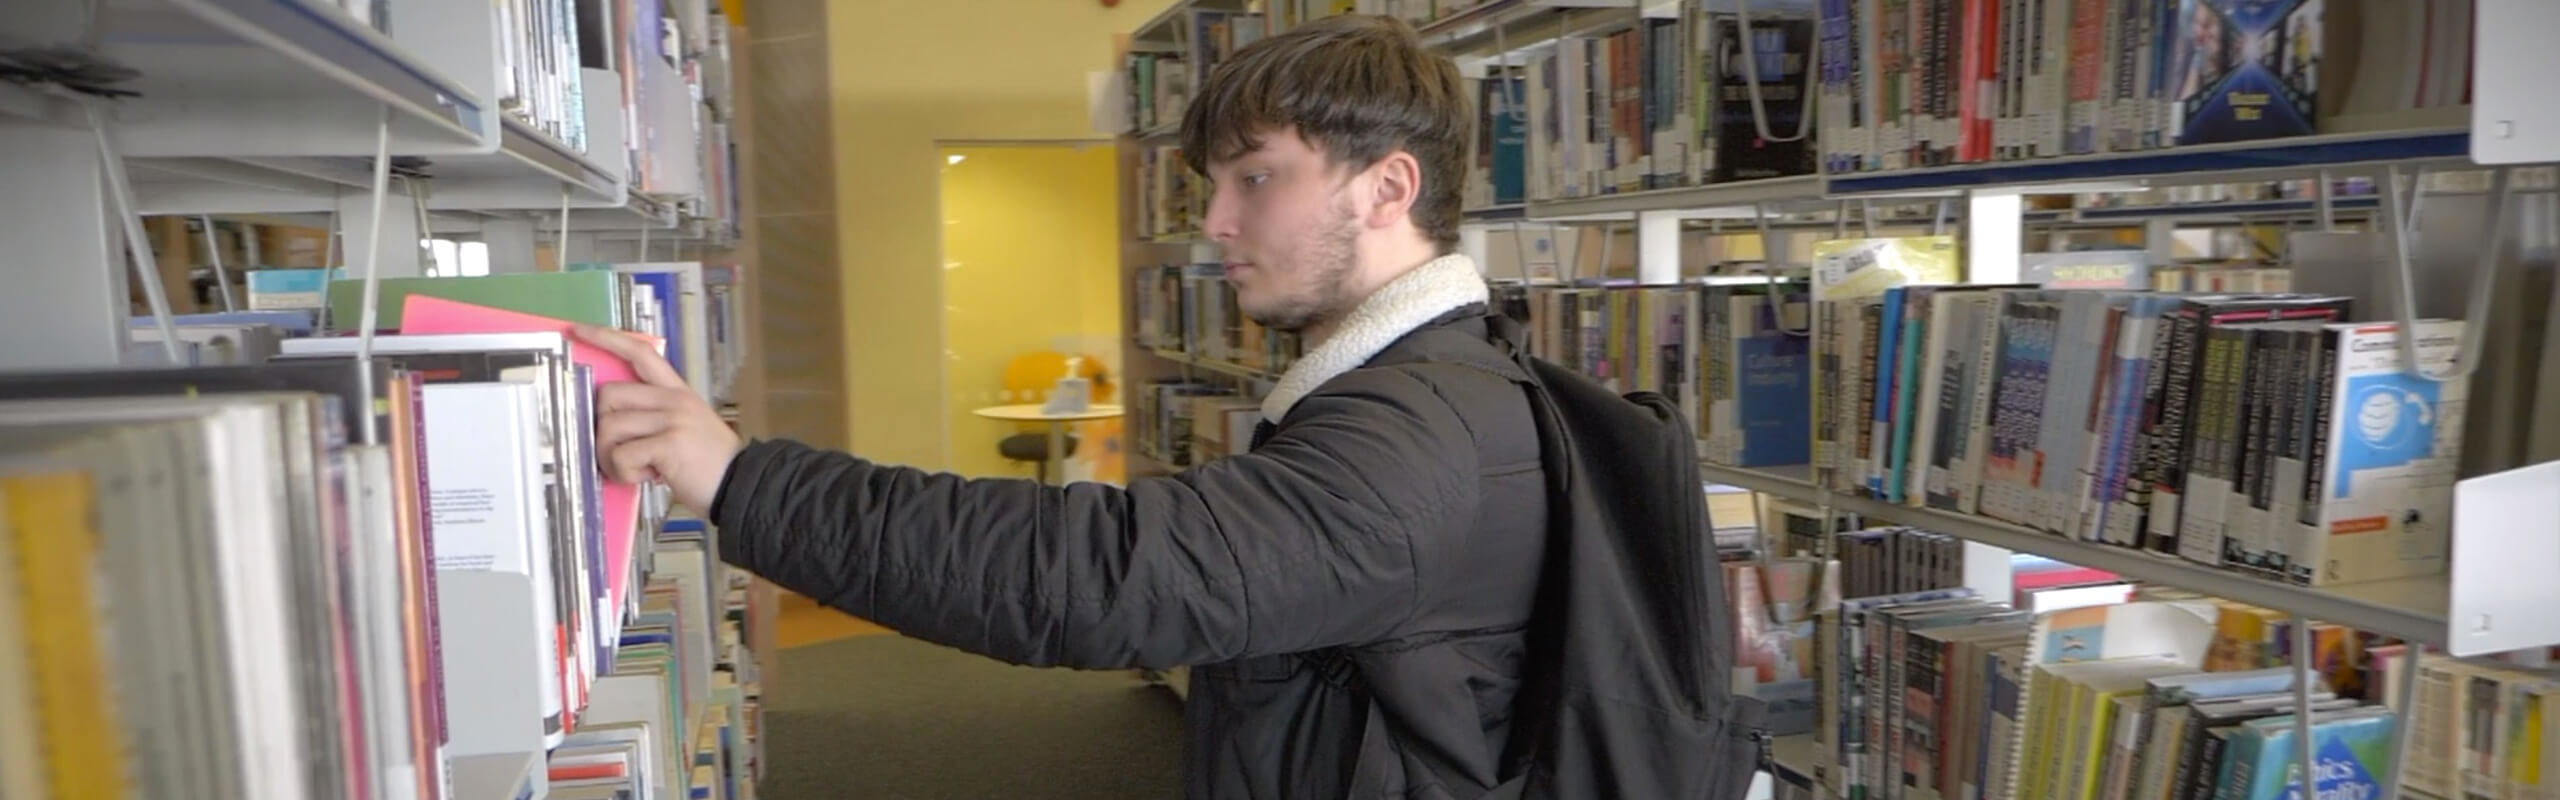 Tom Berrington selecting a book in the library